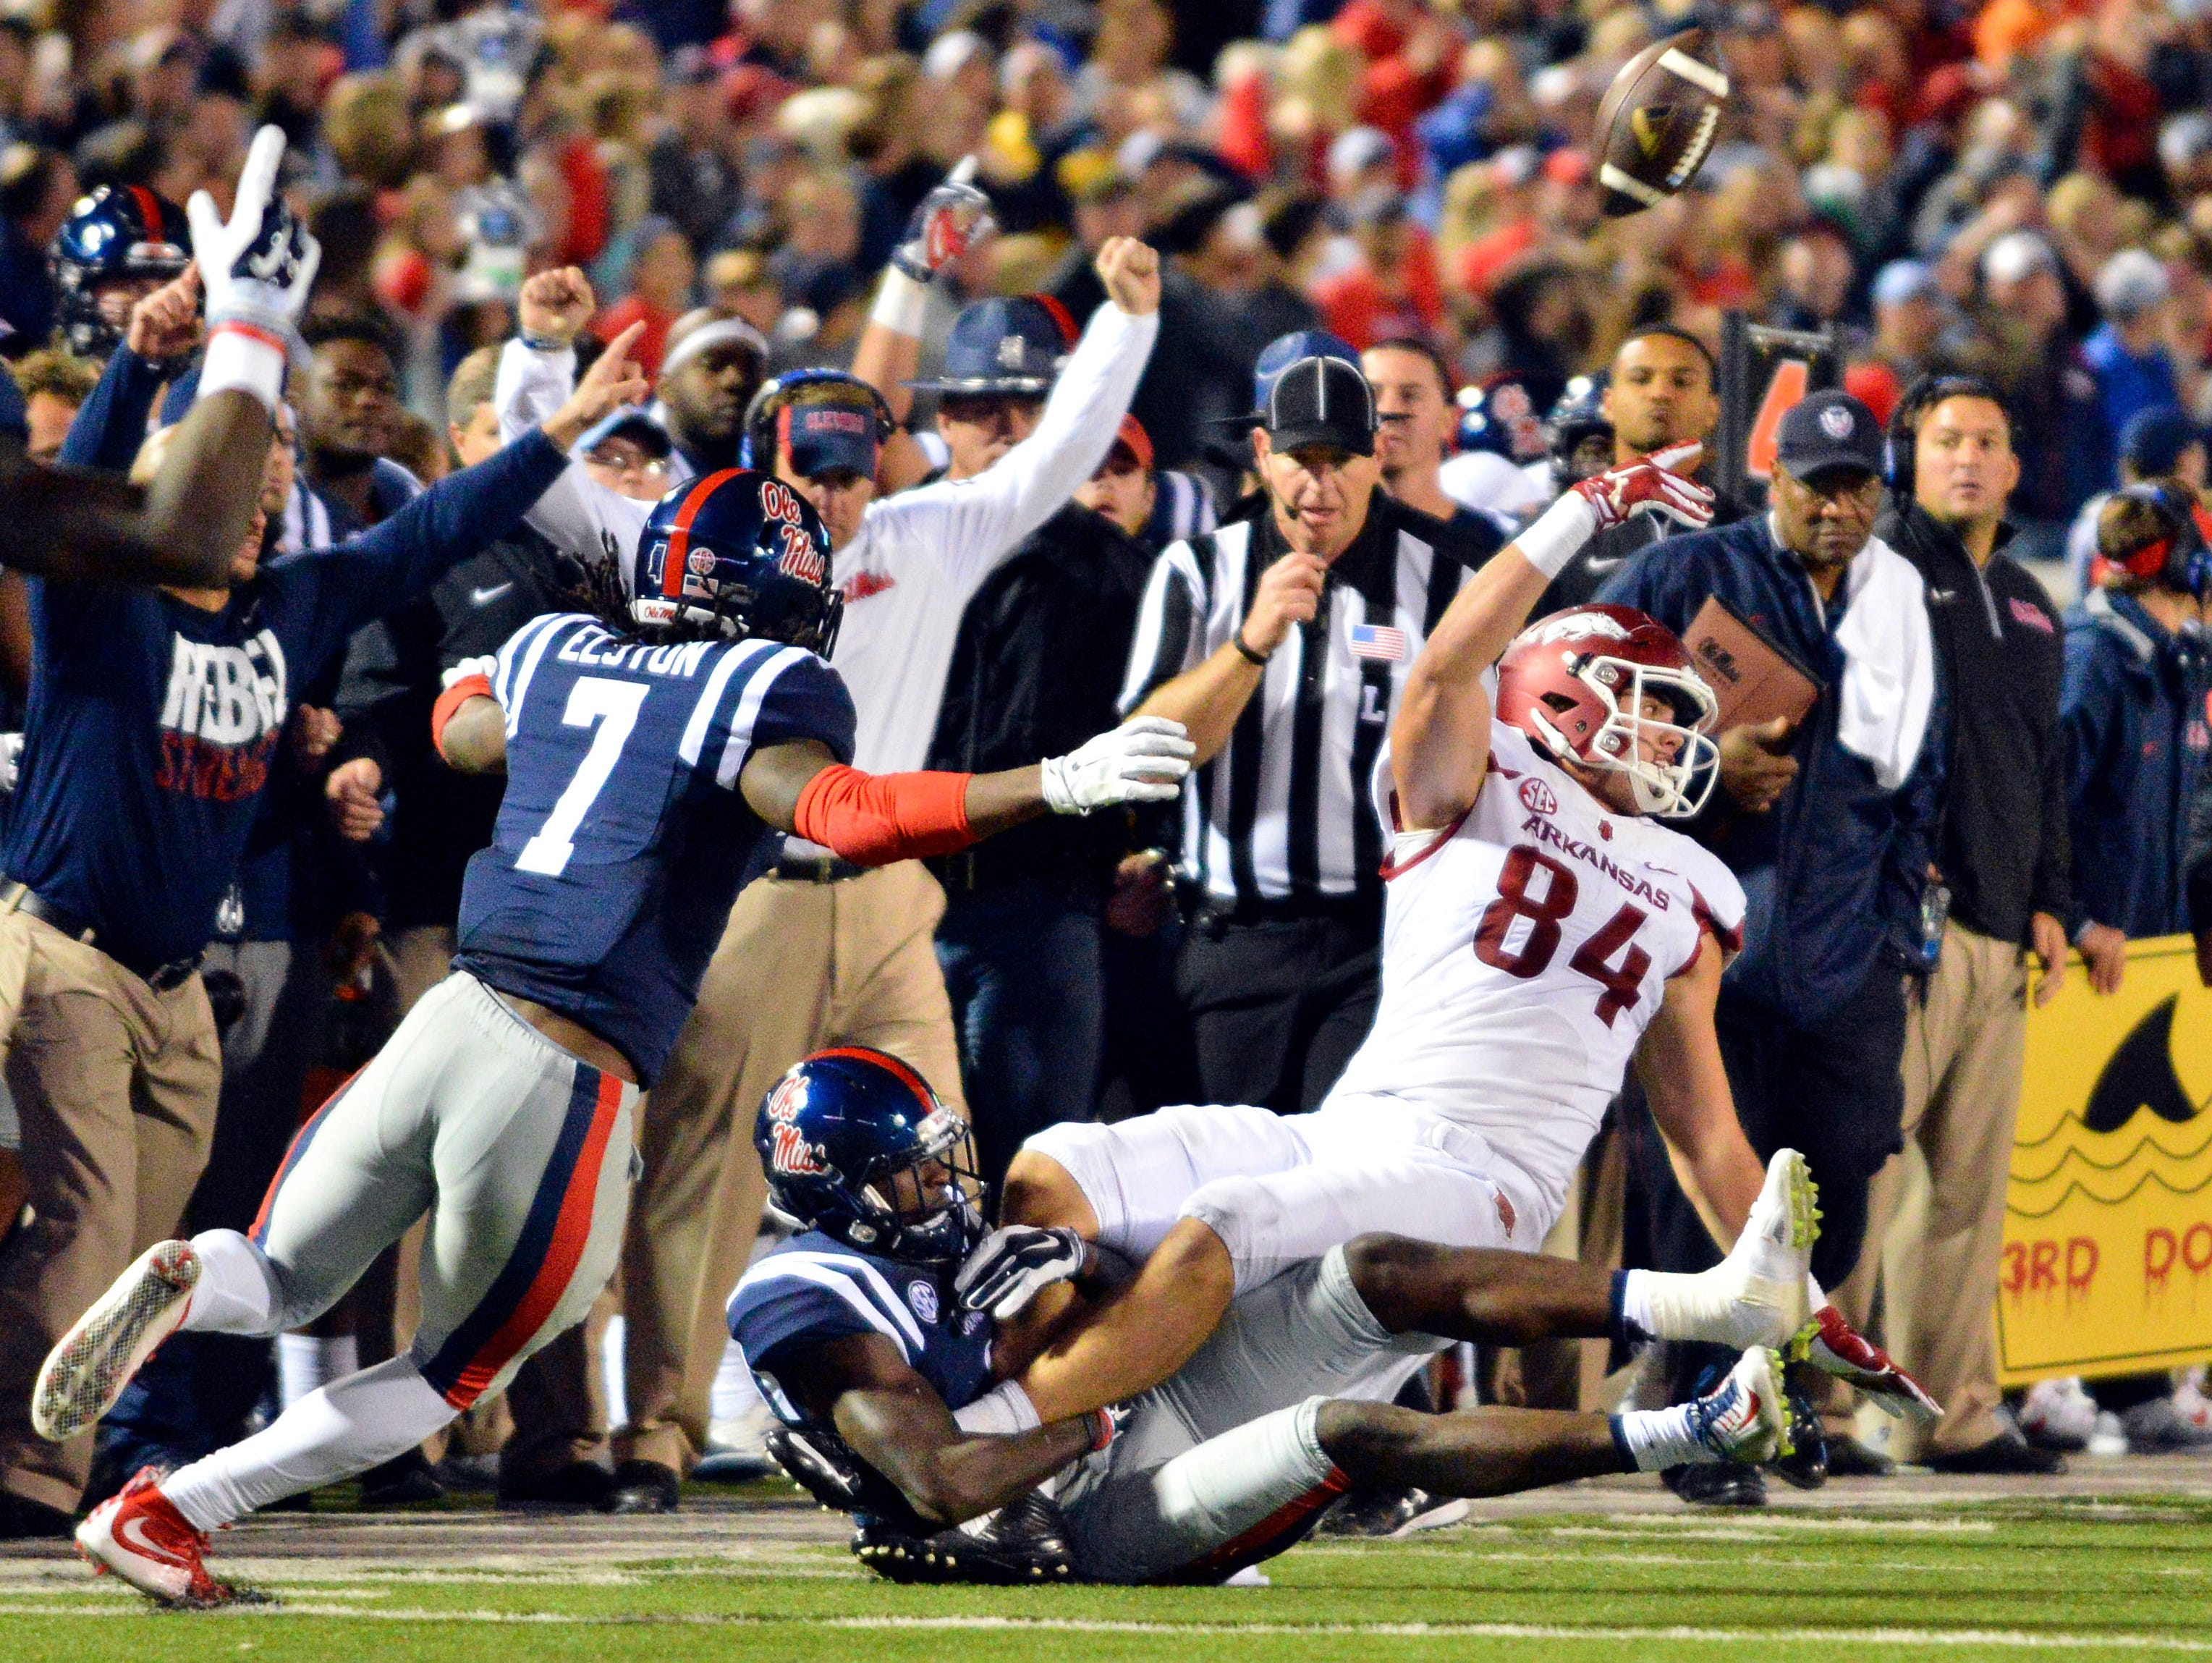 Arkansas tight end Hunter Henry (84) laterals the ball as he is tackled by Mississippi Rebels defensive back Tony Bridges (1) during overtime at Vaught-Hemingway Stadium. Arkansas won 53-52.